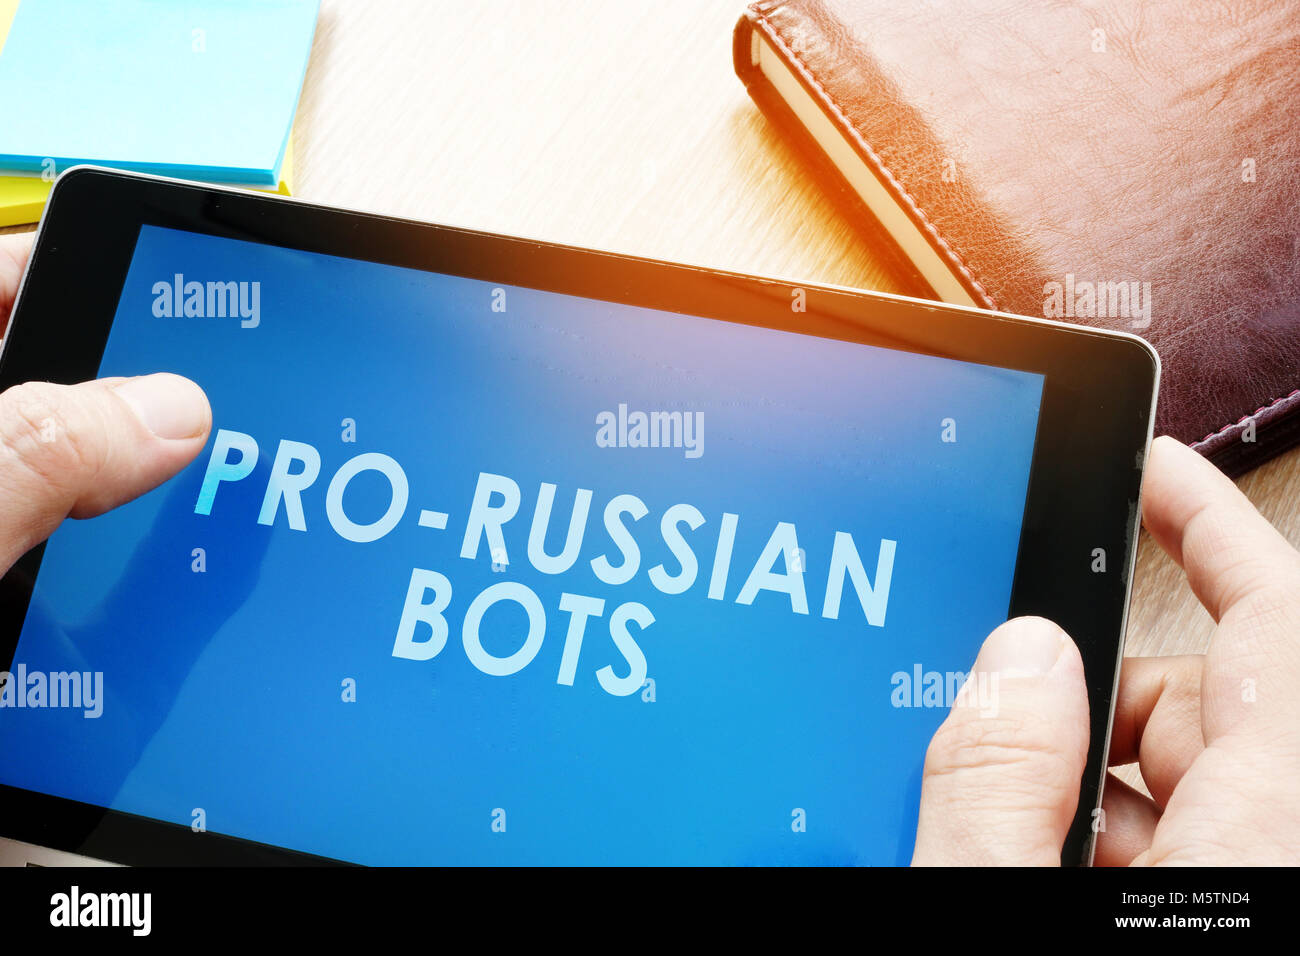 Man holding tablet with words pro-russian bots. Russian internet propaganda concept. - Stock Image